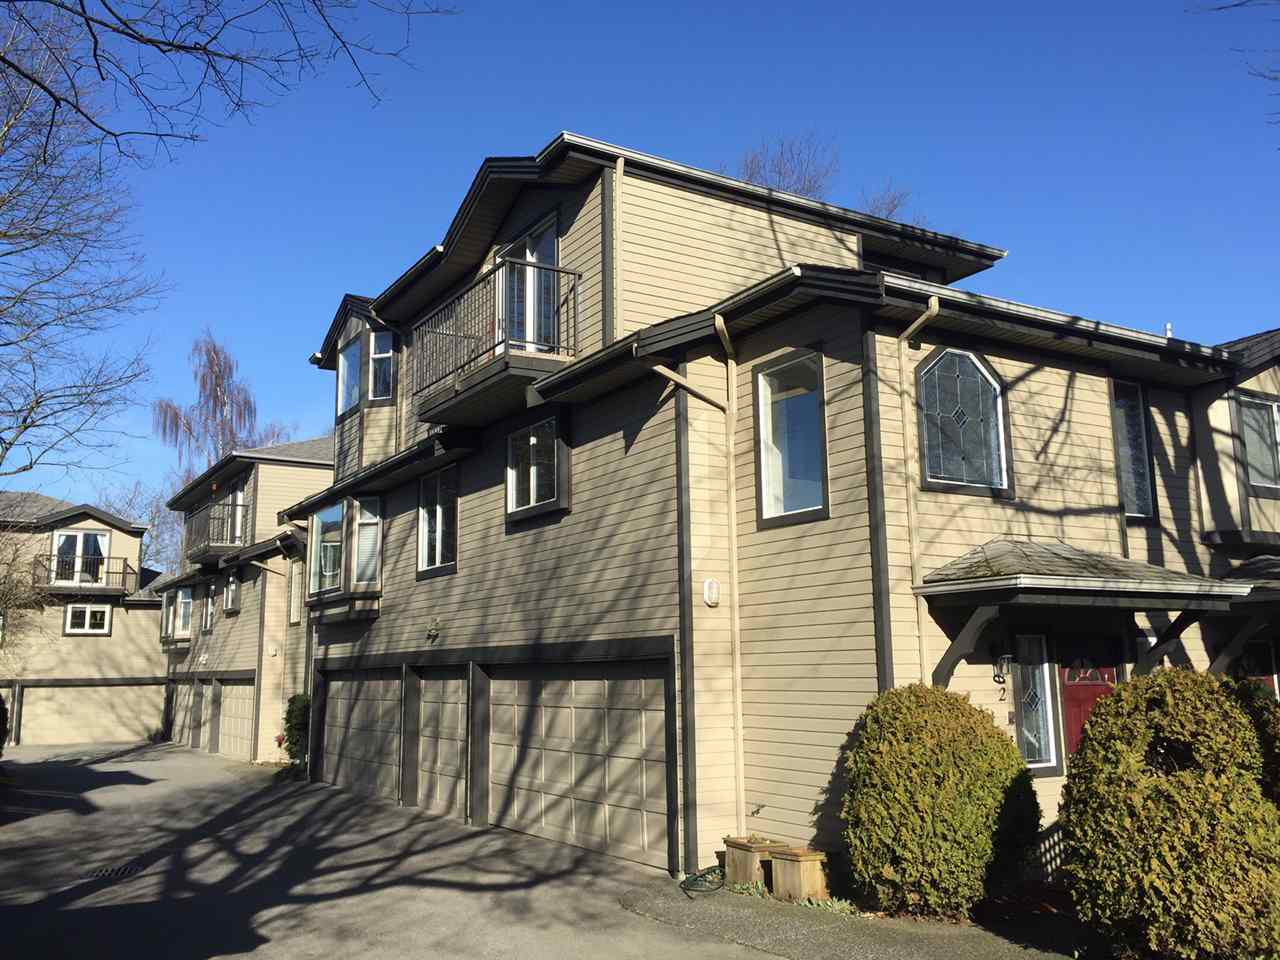 "Main Photo: 2 61 E 23RD Avenue in Vancouver: Main Townhouse for sale in ""61 EAST 23RD AVENUE PLACE"" (Vancouver East)  : MLS®# R2225680"